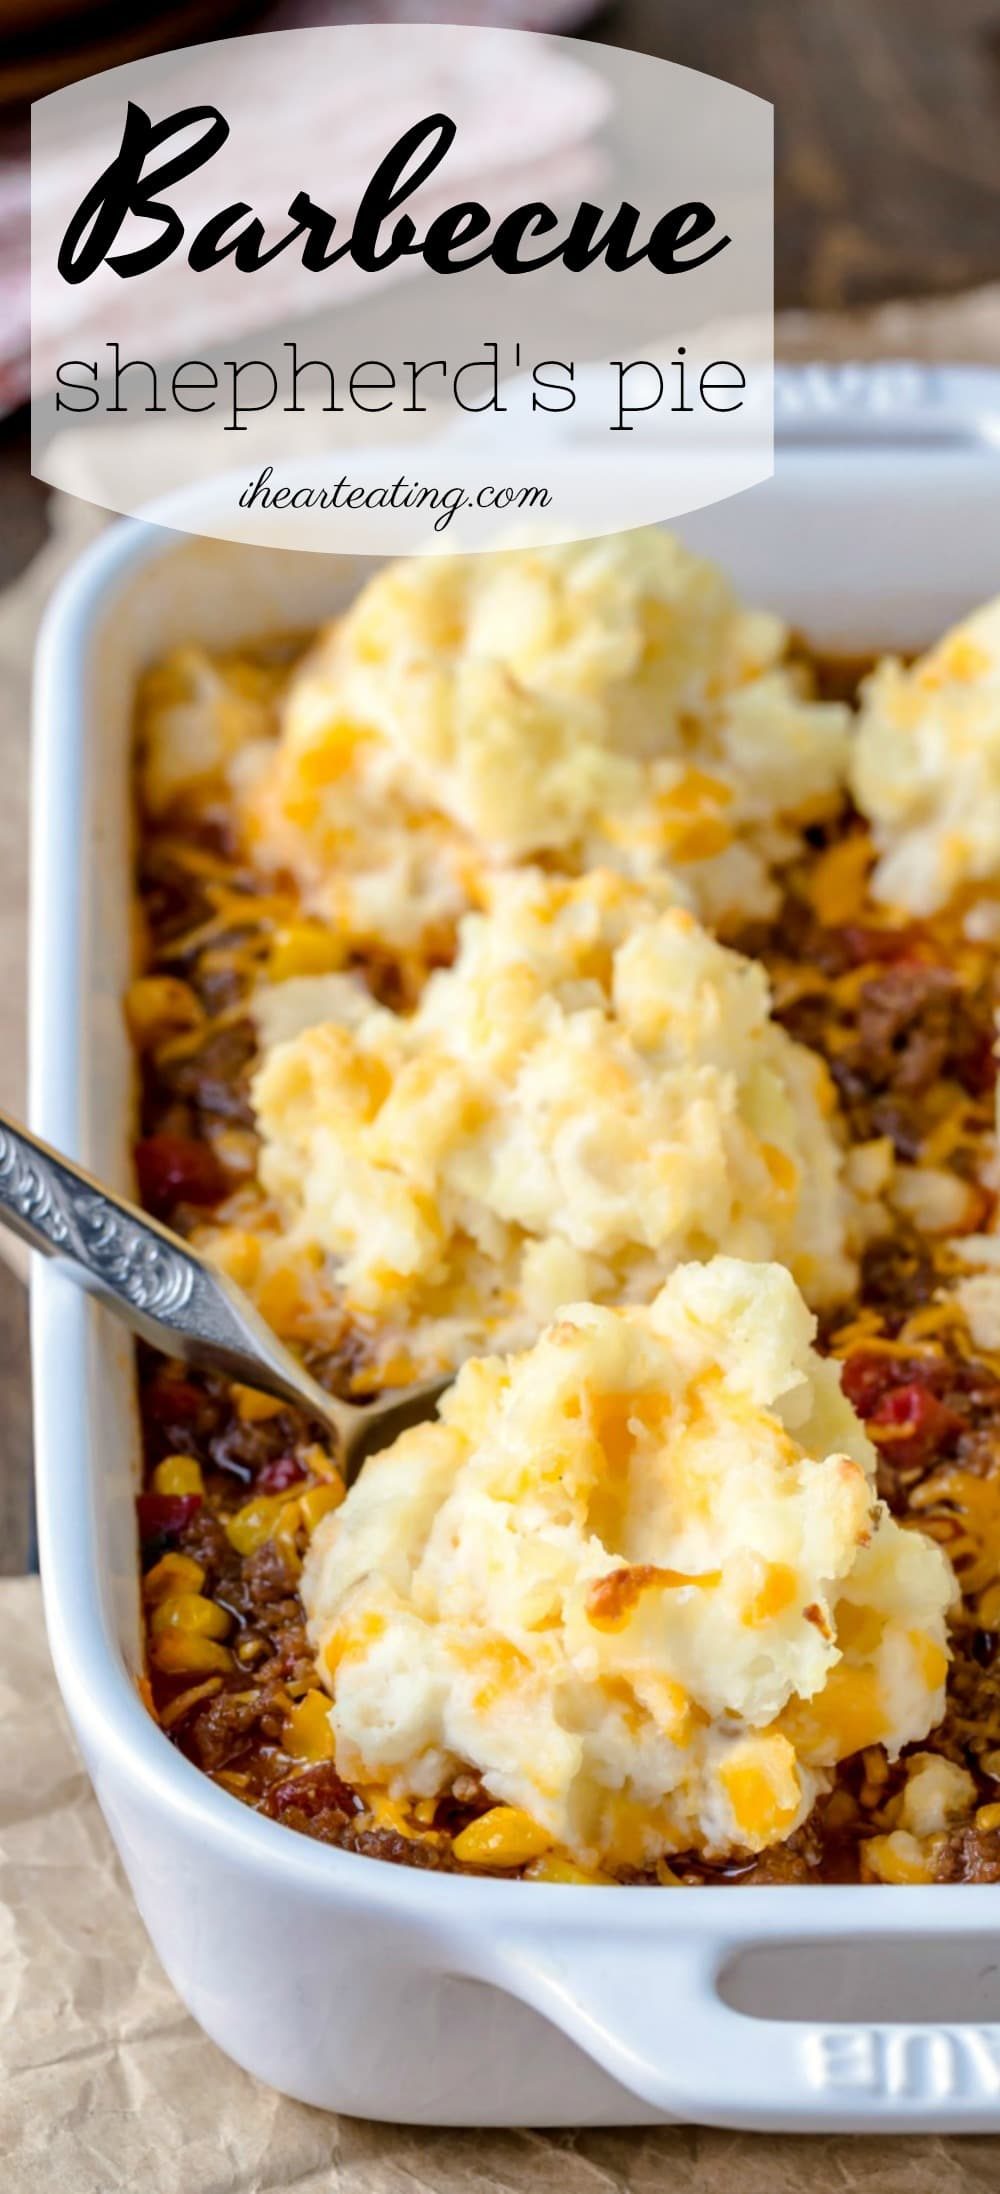 Shepherd's pie recipe made easy for weeknight dinners! This barbecue shepherd's pie is shepards pie meets barbecue burgers topped with simple homemade cheesy mashed potatoes. This family-friendly casserole dinner is a great ground beef recipe! #groundbeef #potato #dinner #recipe #casserole #easy #fast #weeknight #familyfriendly #ihearteating